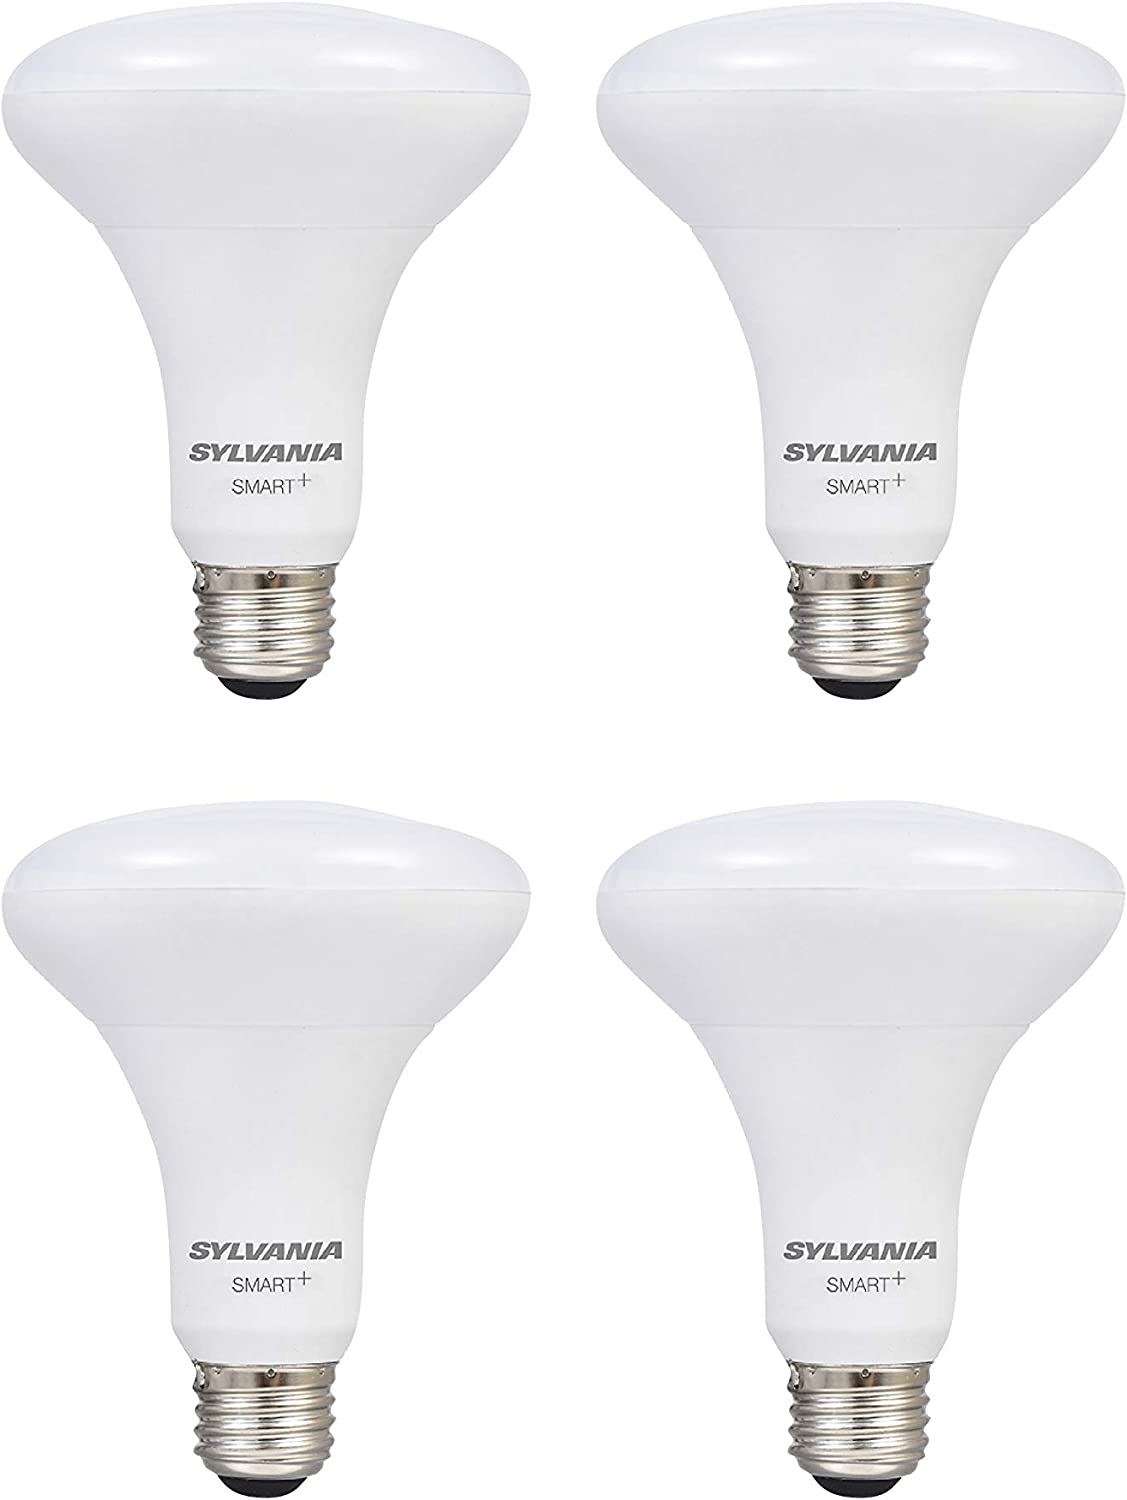 SYLVANIA Smart + Wi-Fi Soft White Dimmable BR30 LED Light Bulb